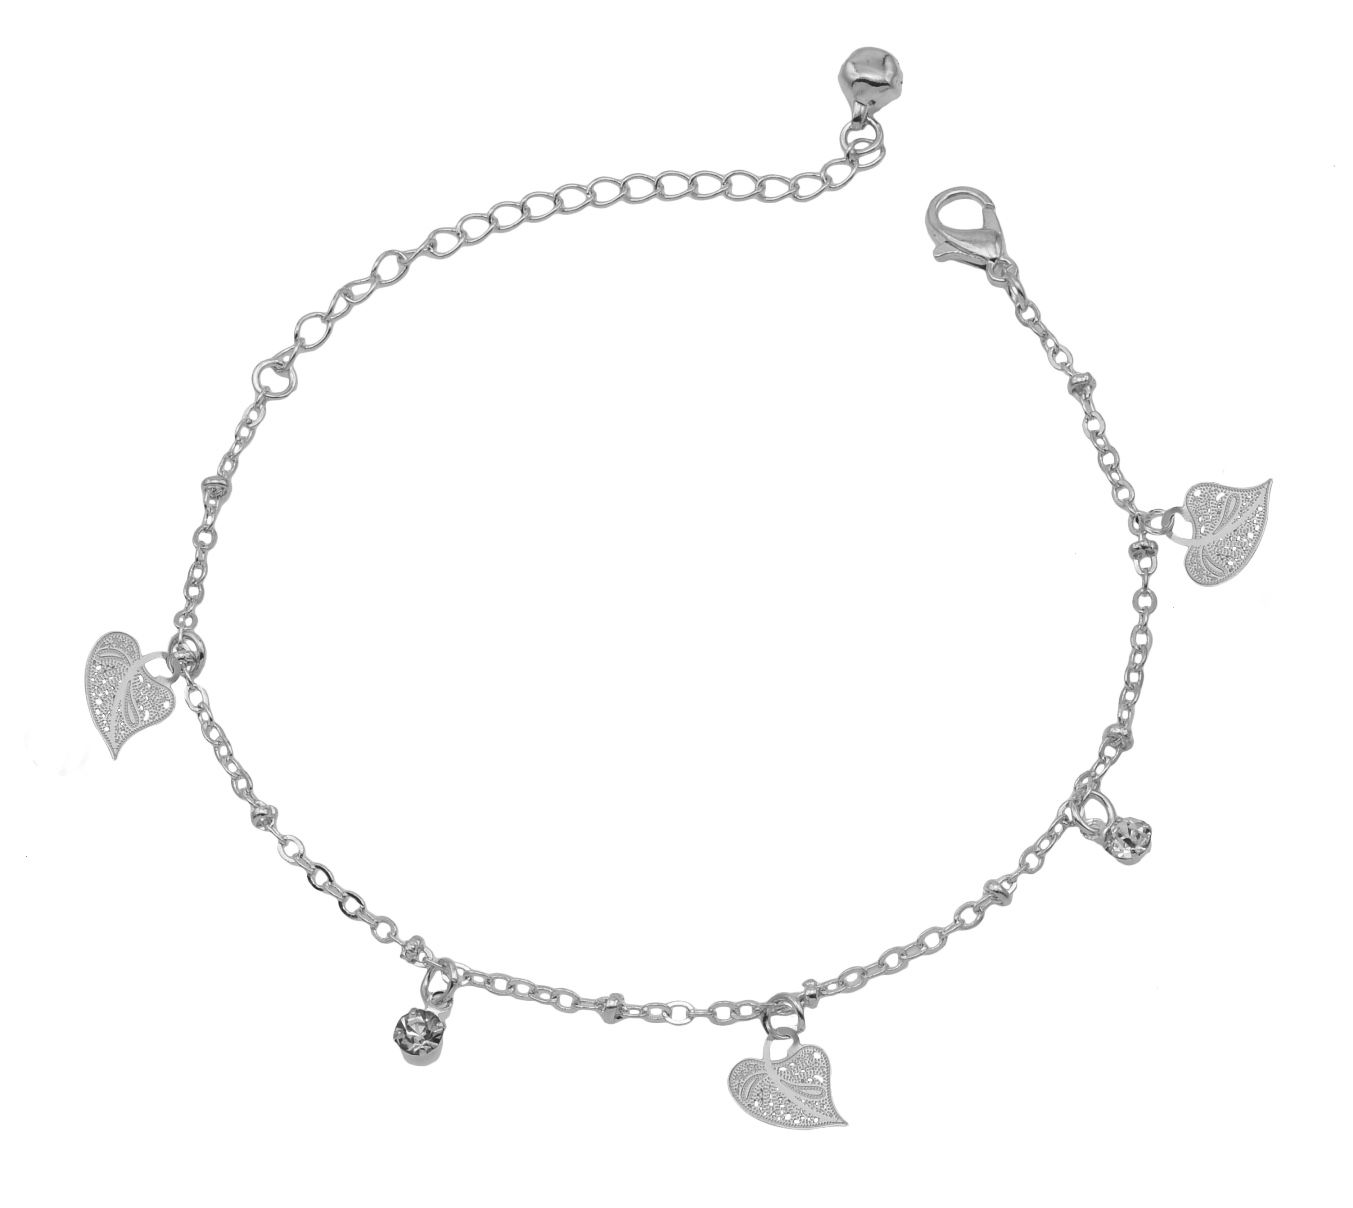 High Trendz Trendy Light Weight Silver Plated Anklet With Hanging Leaf For Women And Girls